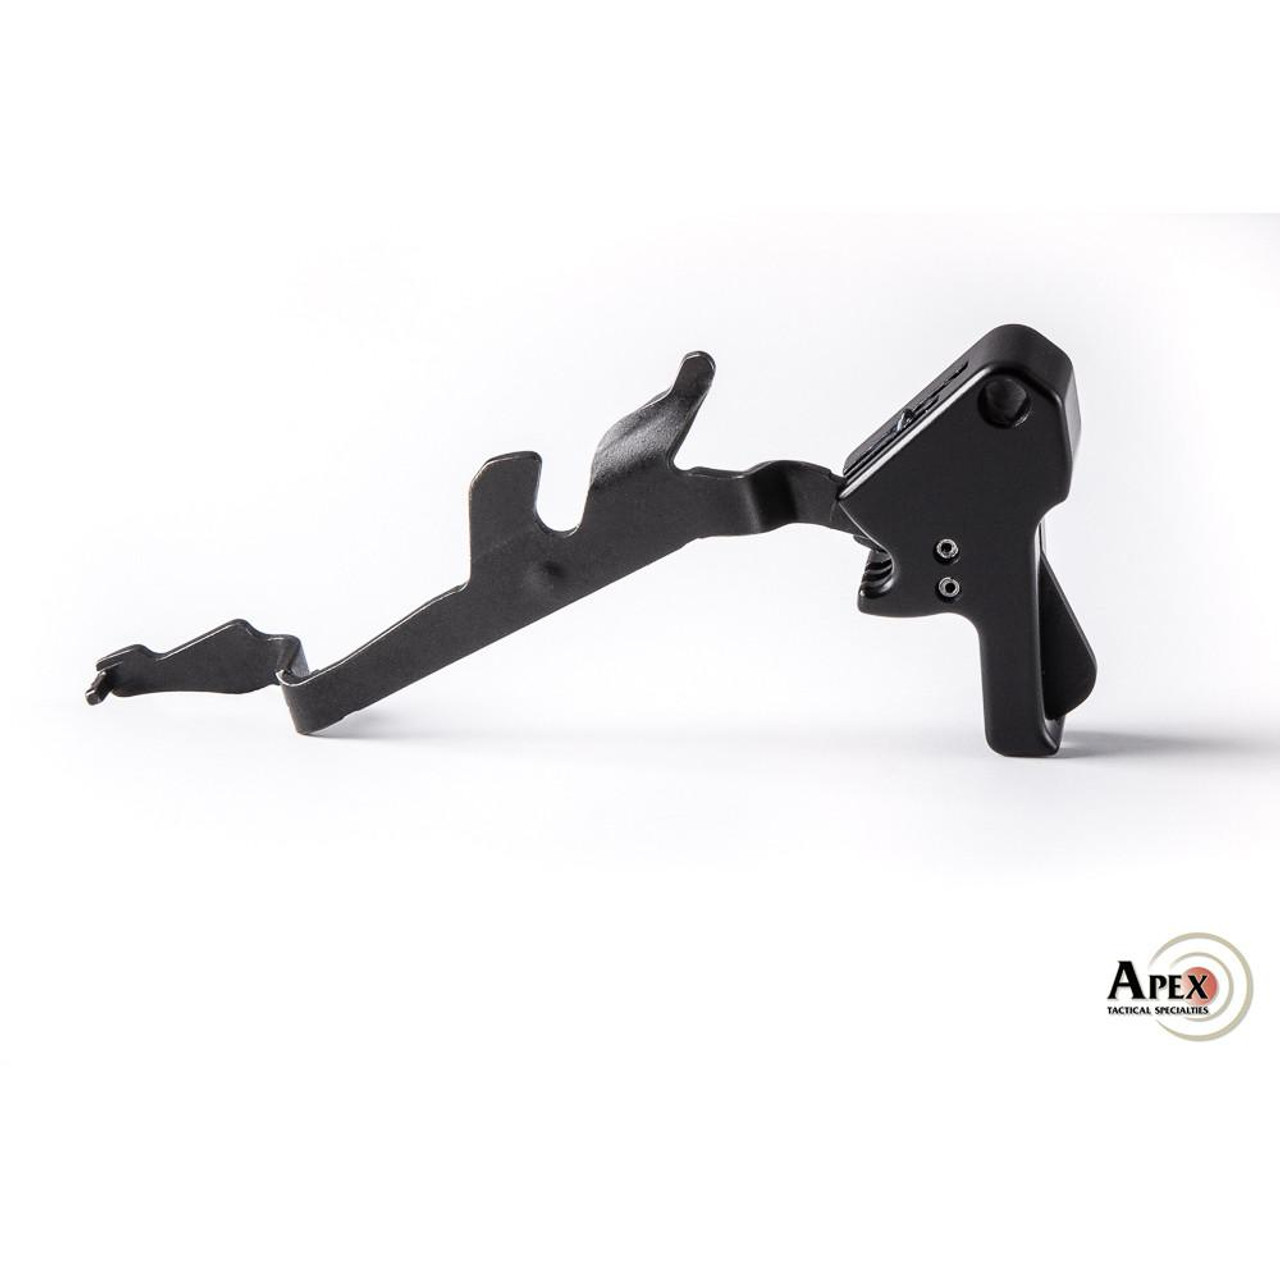 Apex Tactical Walther PPQ Forward Set Trigger & Apex Tuned Trigger Bar